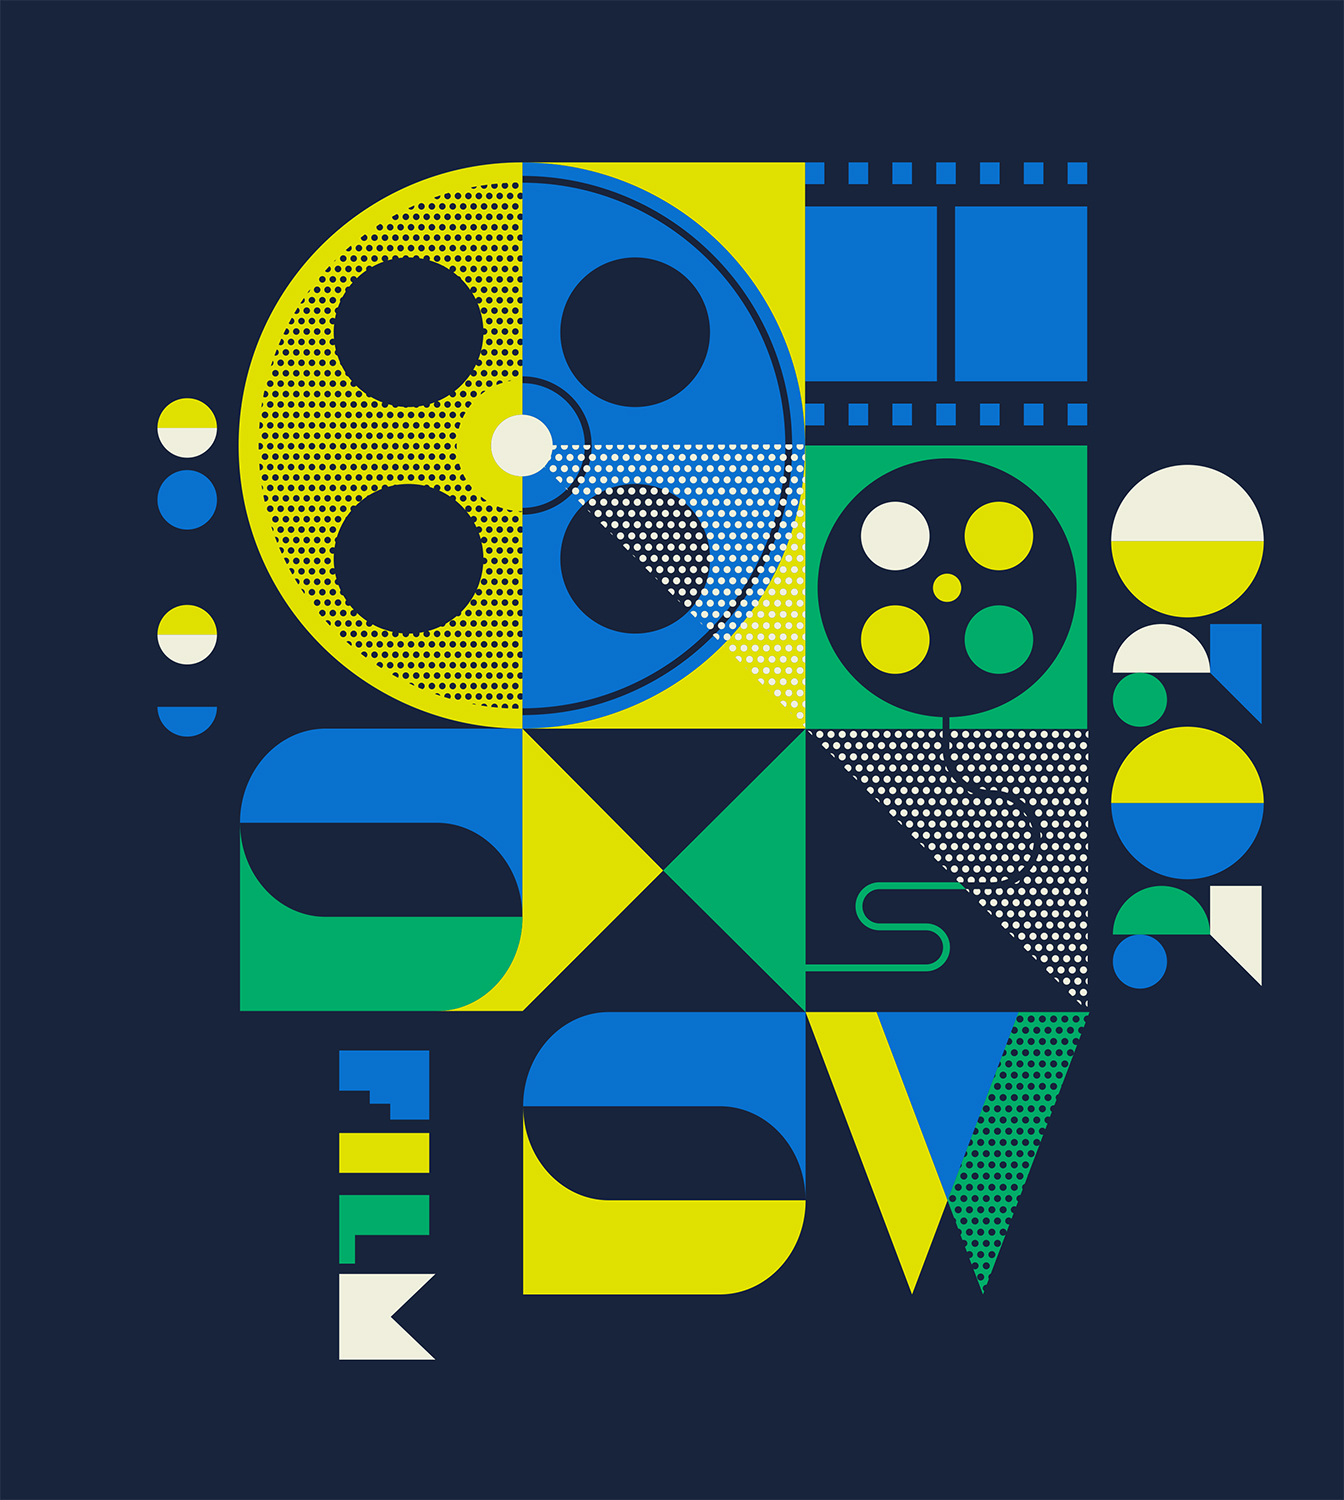 SXSW Film t-shirt artwork for 2020 by Ty Mattson